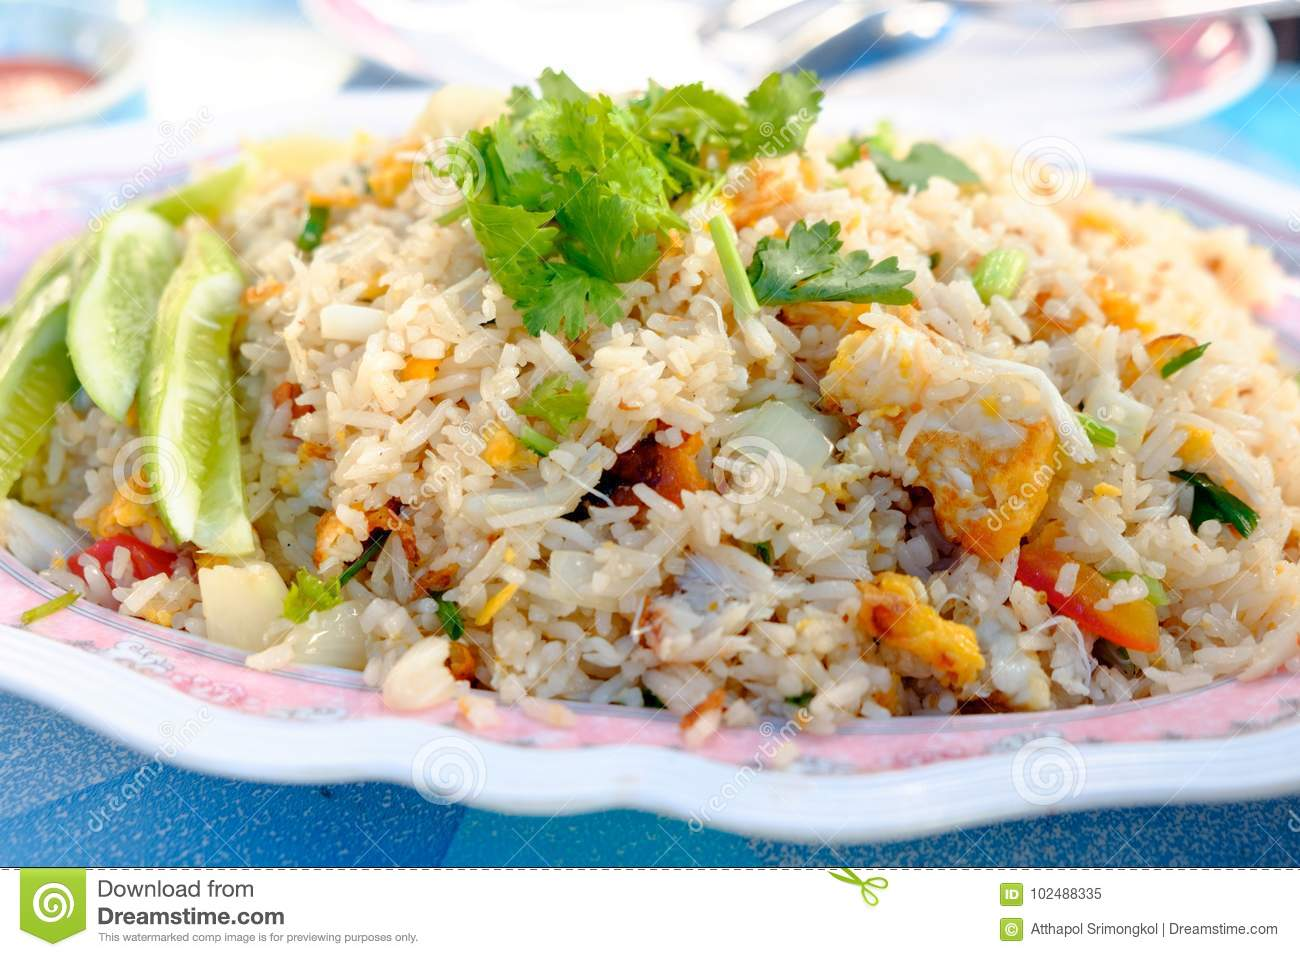 Fried rice with crab meat, eggs and vegetables on the plate